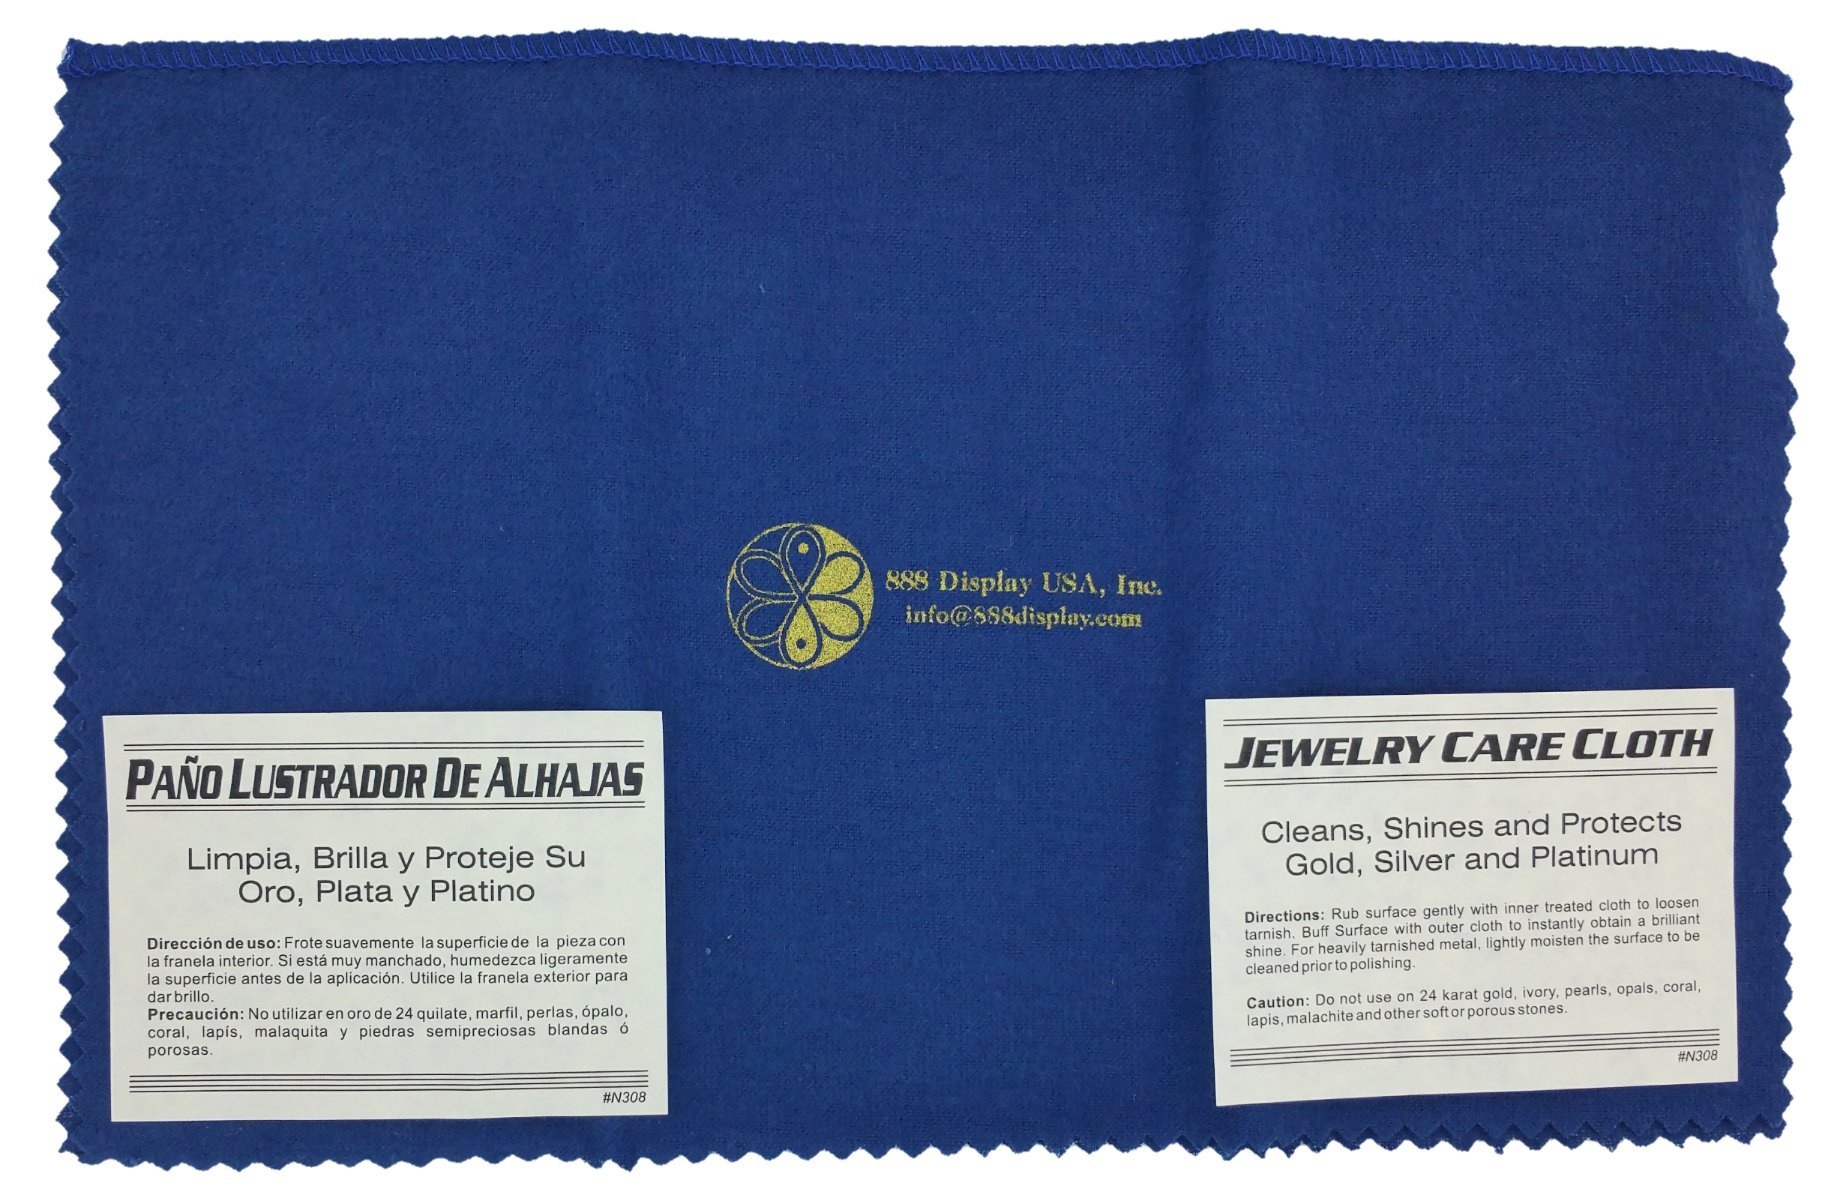 888 Display Jewelry Cleaning Cloth, Cleans, Shines, and Protects Gold, Silver and Platinum - 2 Cloths (12x15)